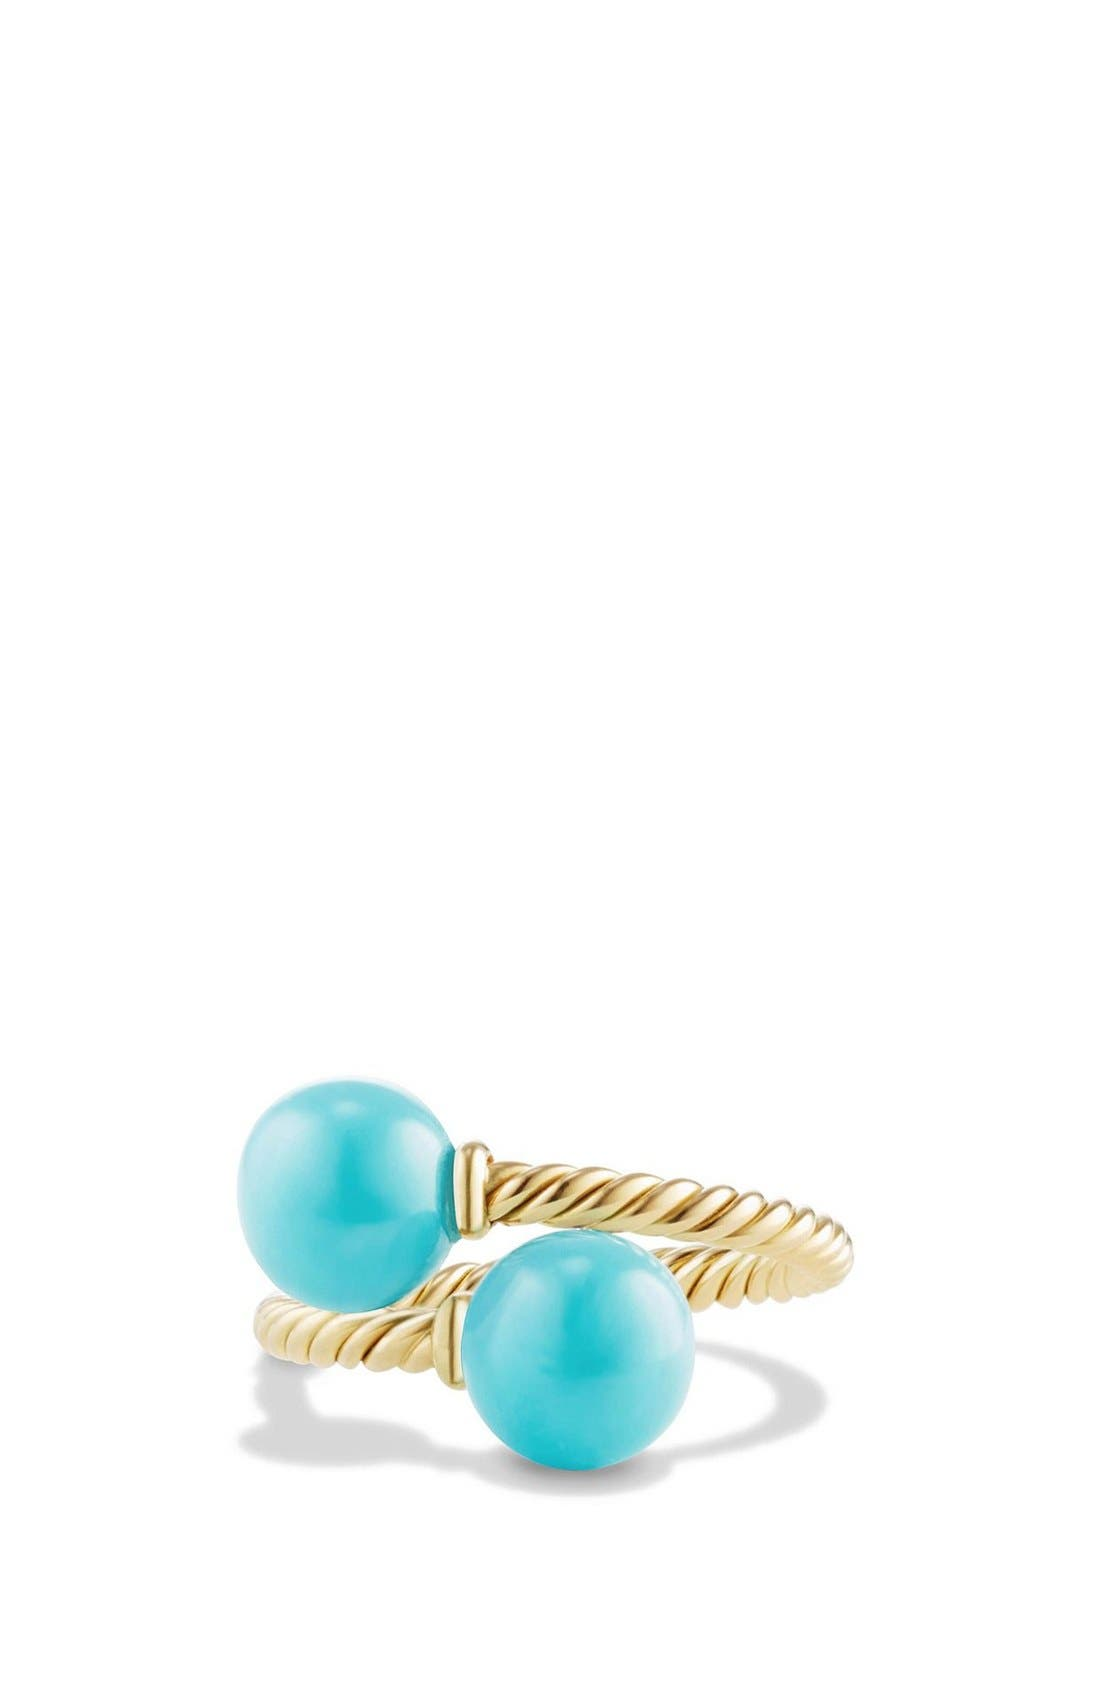 DAVID YURMAN, 'Solari' Bead Ring with Turquoise in 18K Gold, Main thumbnail 1, color, TURQUOISE